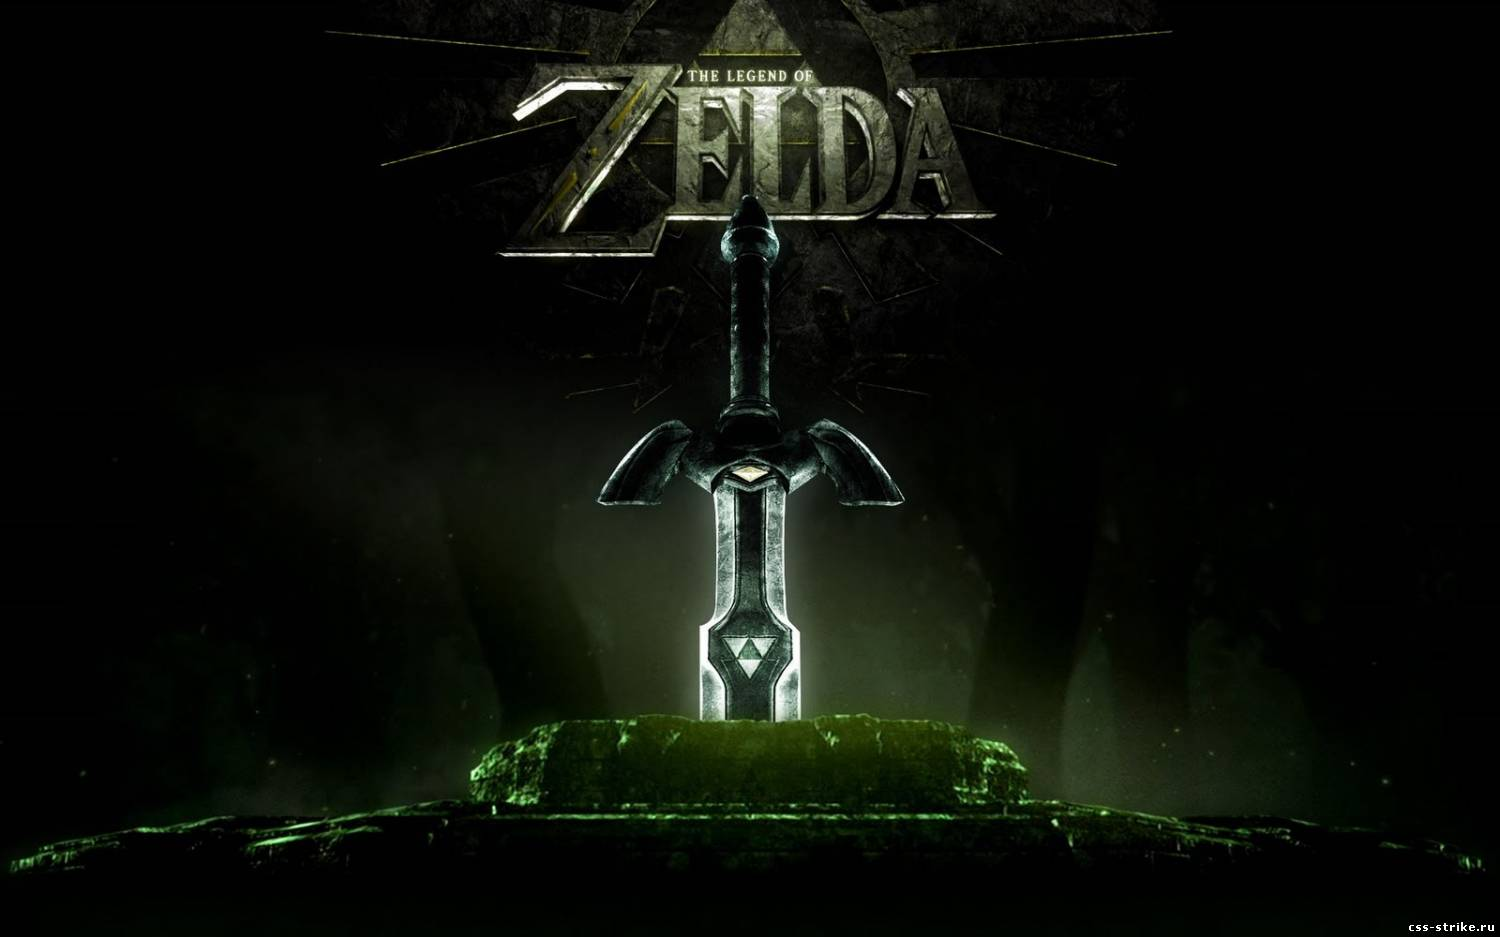 скачать The legend of Zelda background бесплатно